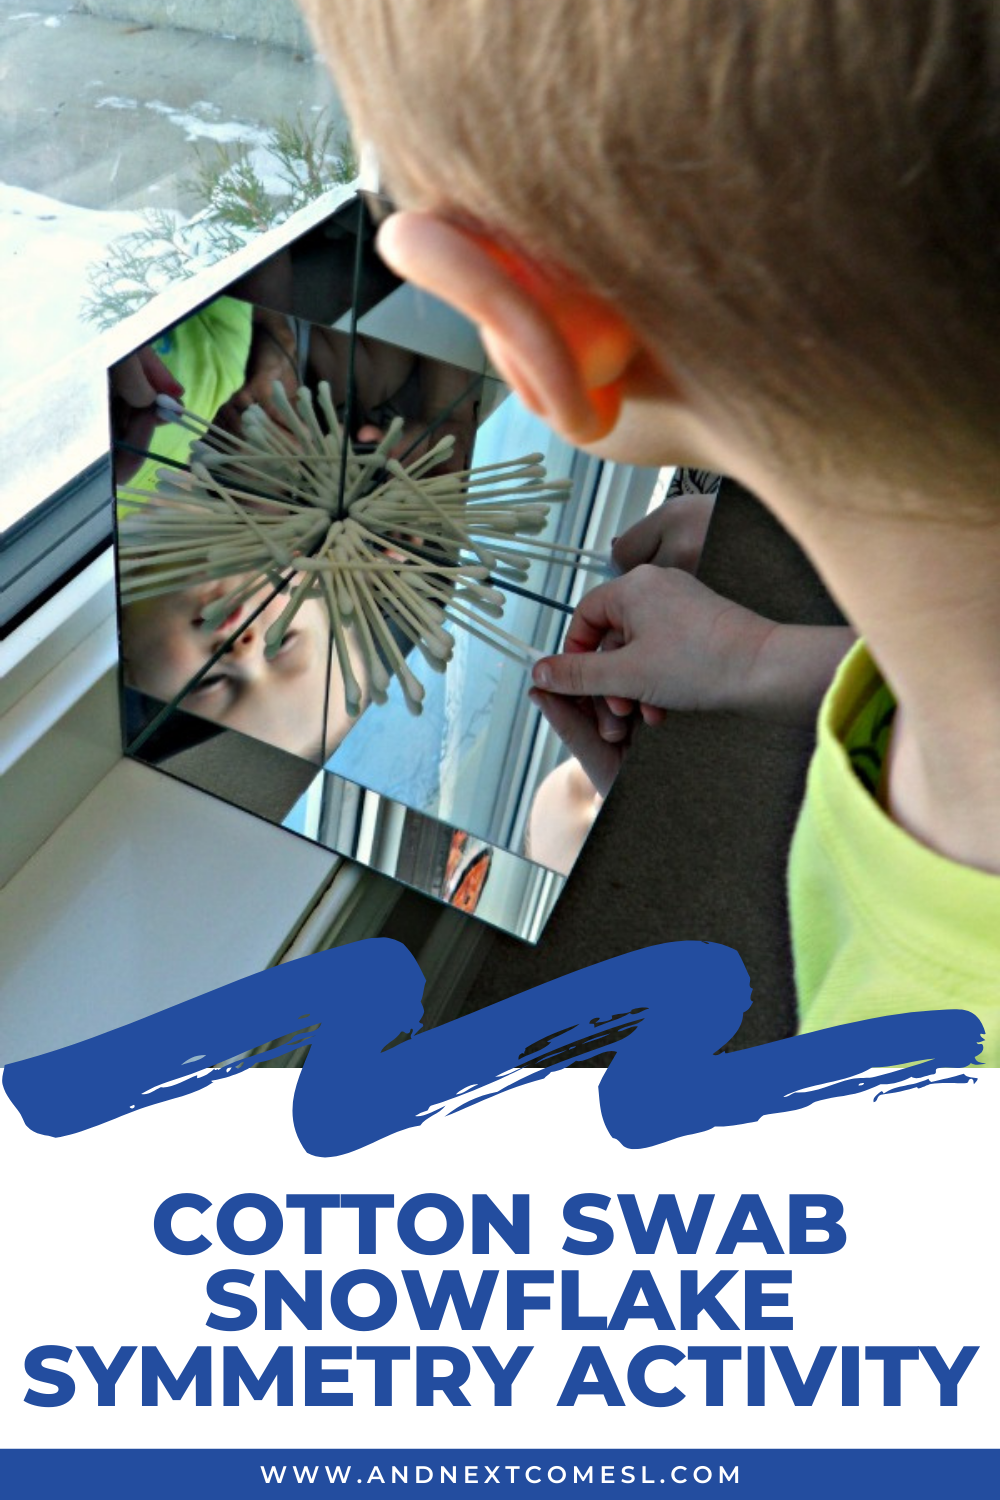 Explore symmetry by making cotton swab snowflakes in a DIY mirror box with this simple preschool symmetry activity